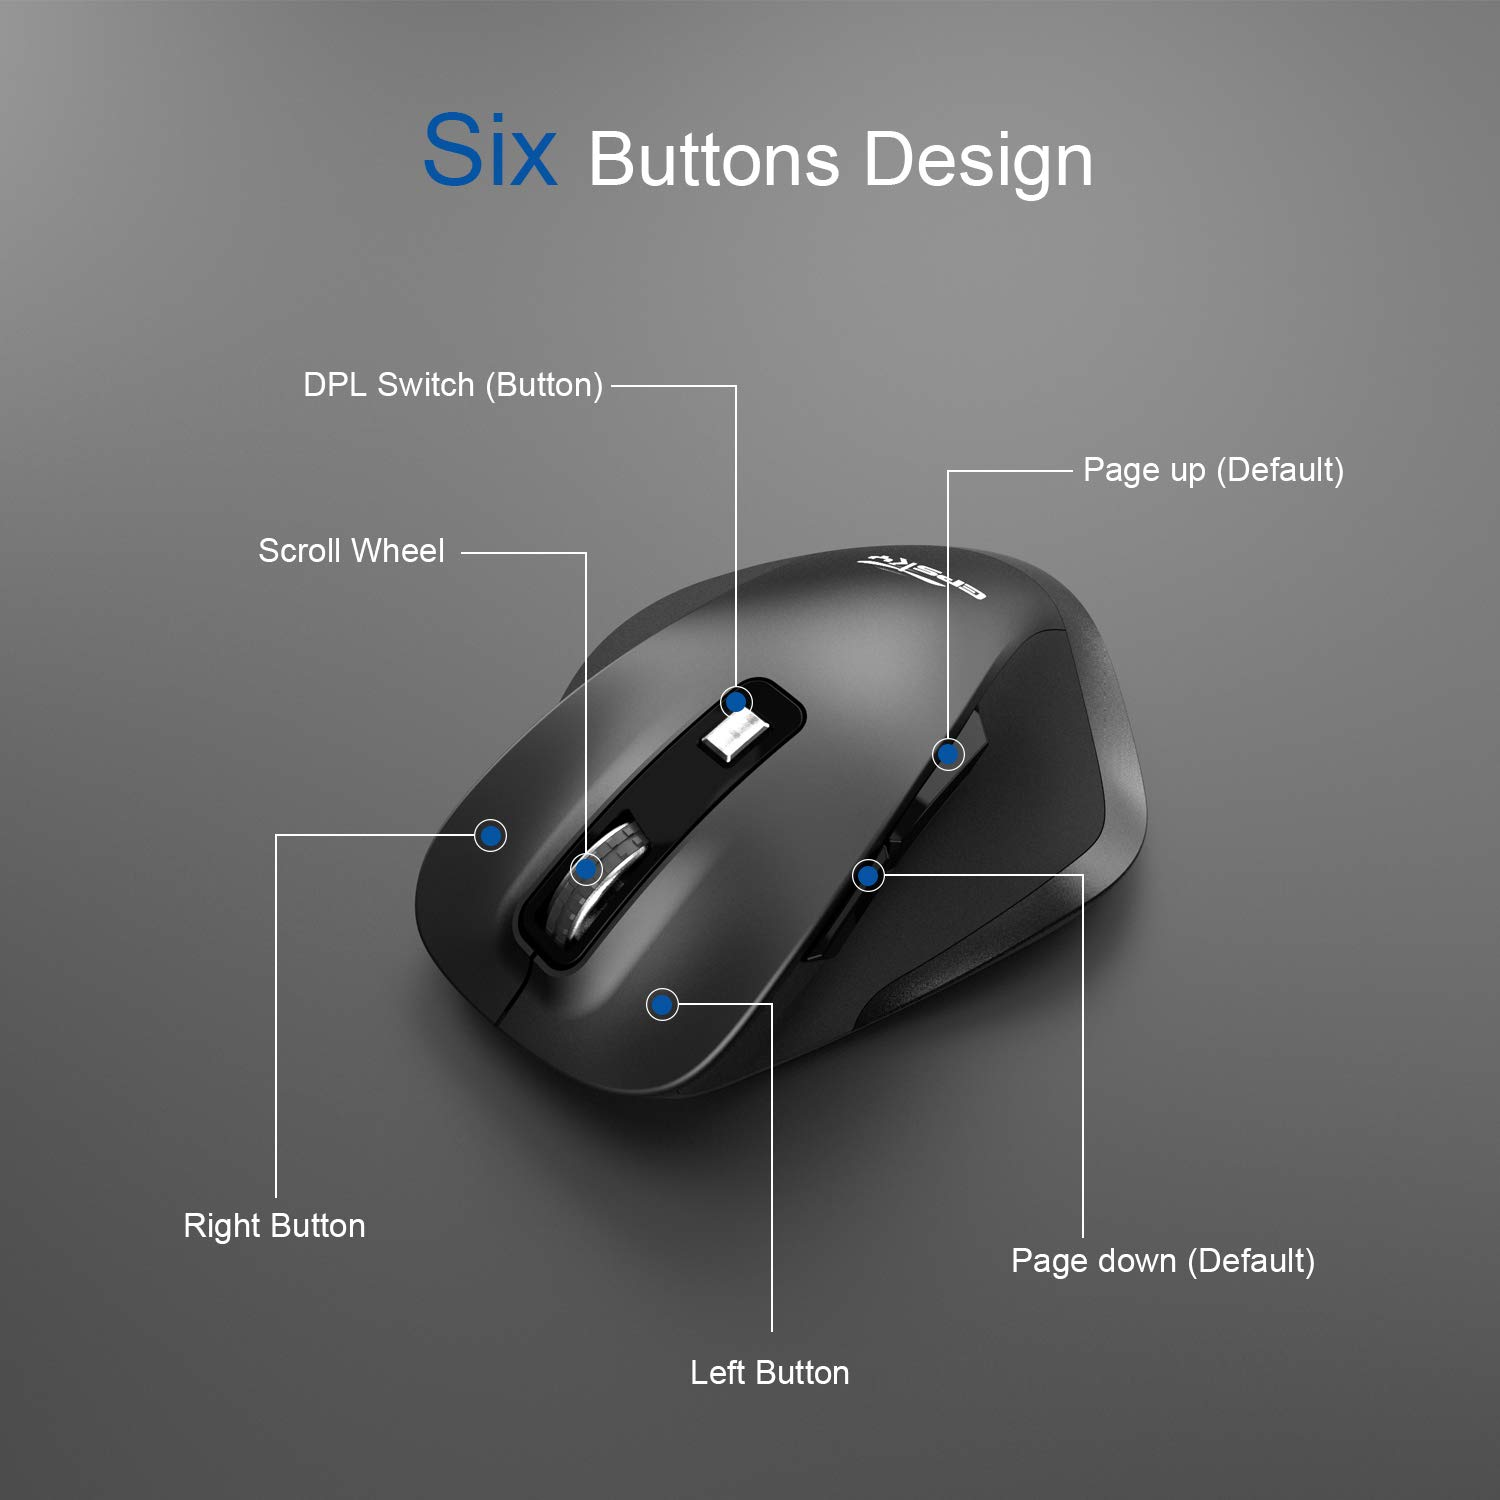 EPSKY 5 Adjustable DPI Levels, 6 Buttons 2.4G Wireless Mouse Portable Mobile Optical Mouse with USB Receiver, Orange